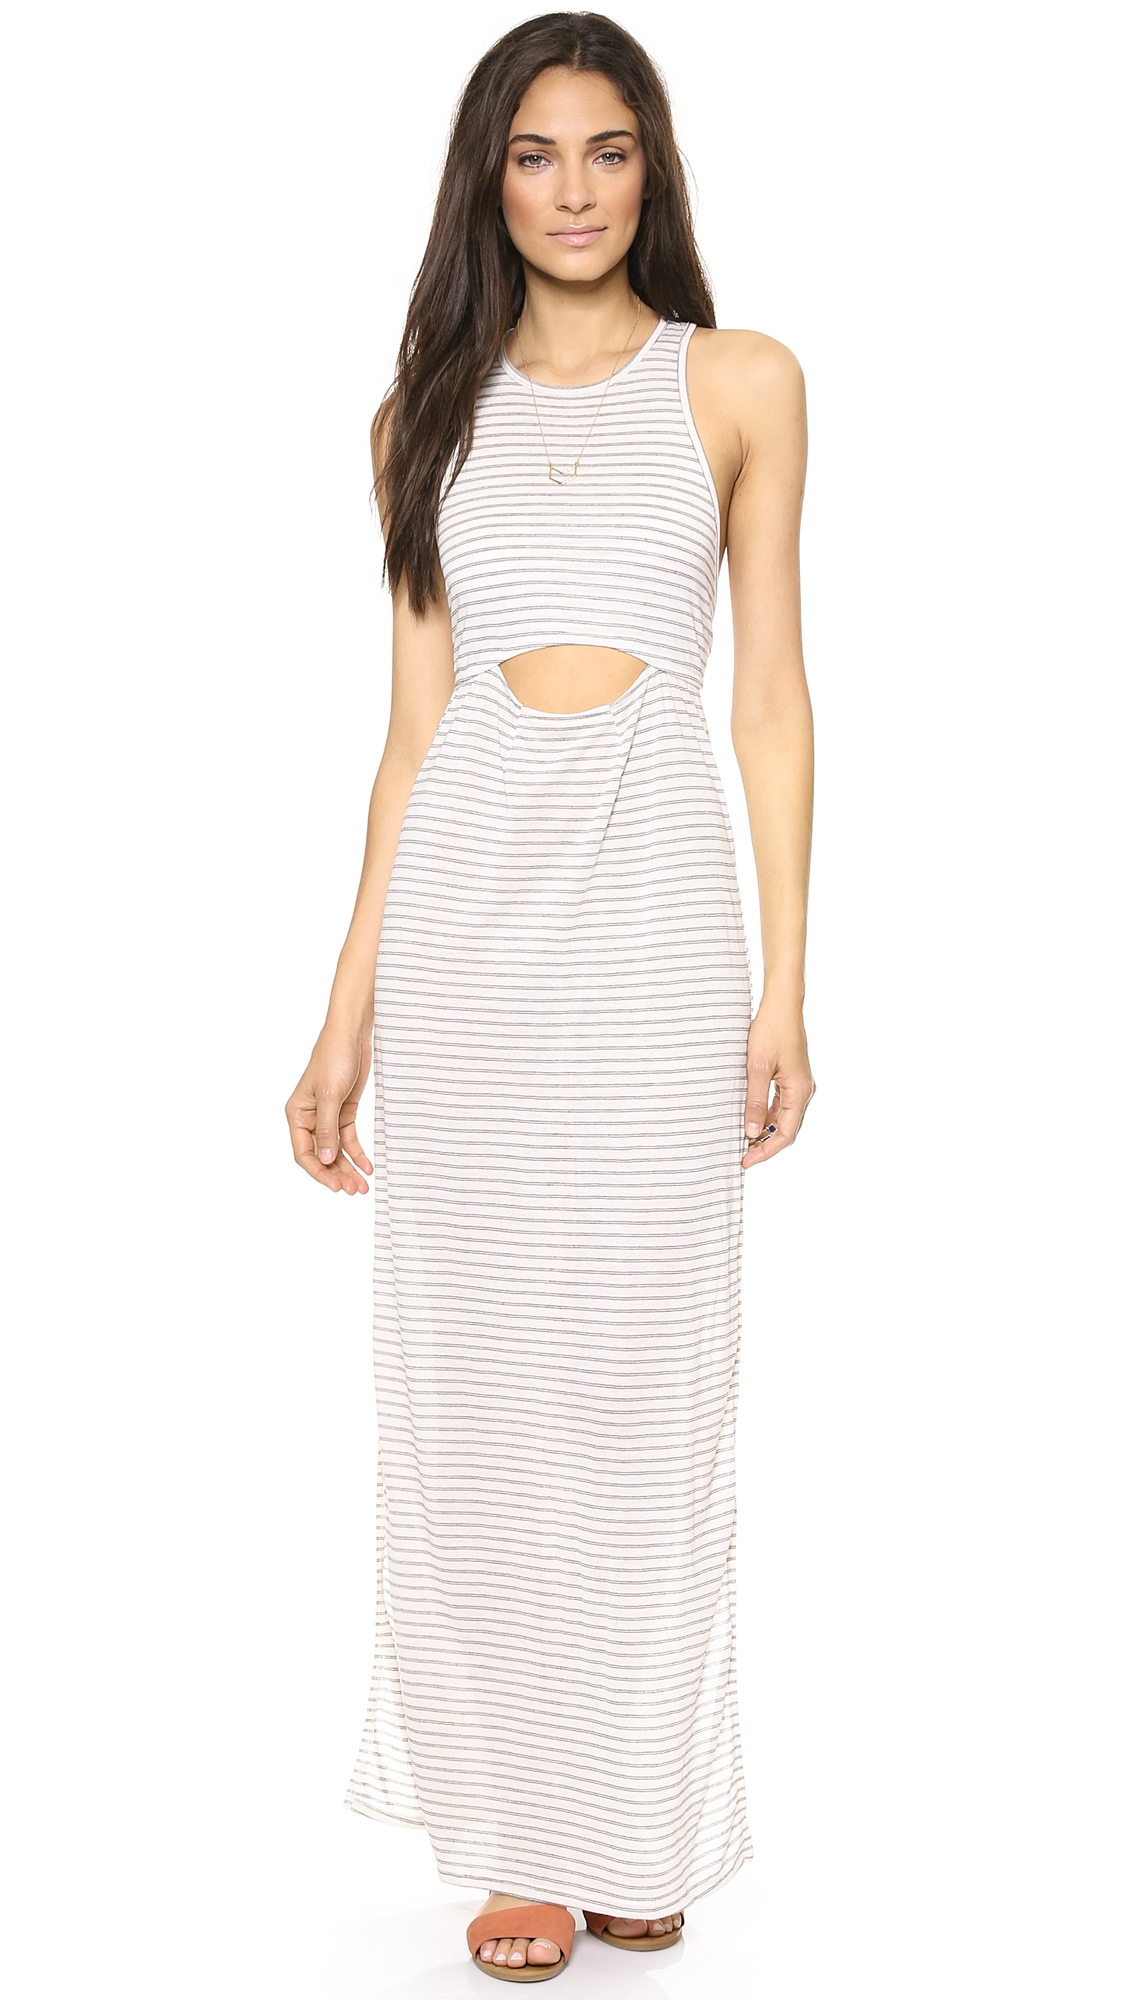 Knot Sisters Illusion Maxi Dress